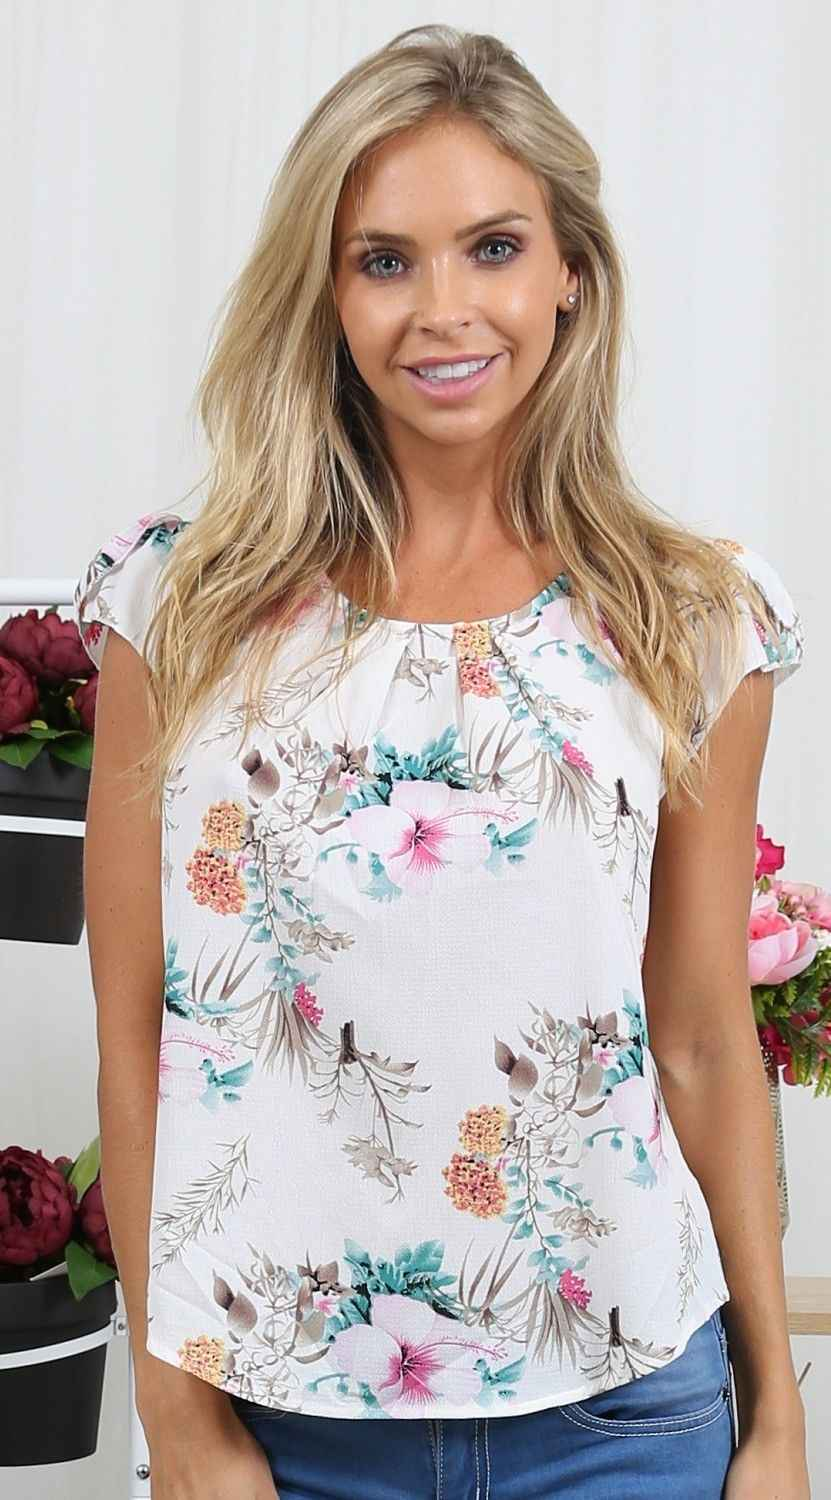 be6bd84c3dca Summer Women Casual Tops Blouse 2018 Floral Chifon Short Sleeve Crew Neck  Floral Shirt Ladies Tee